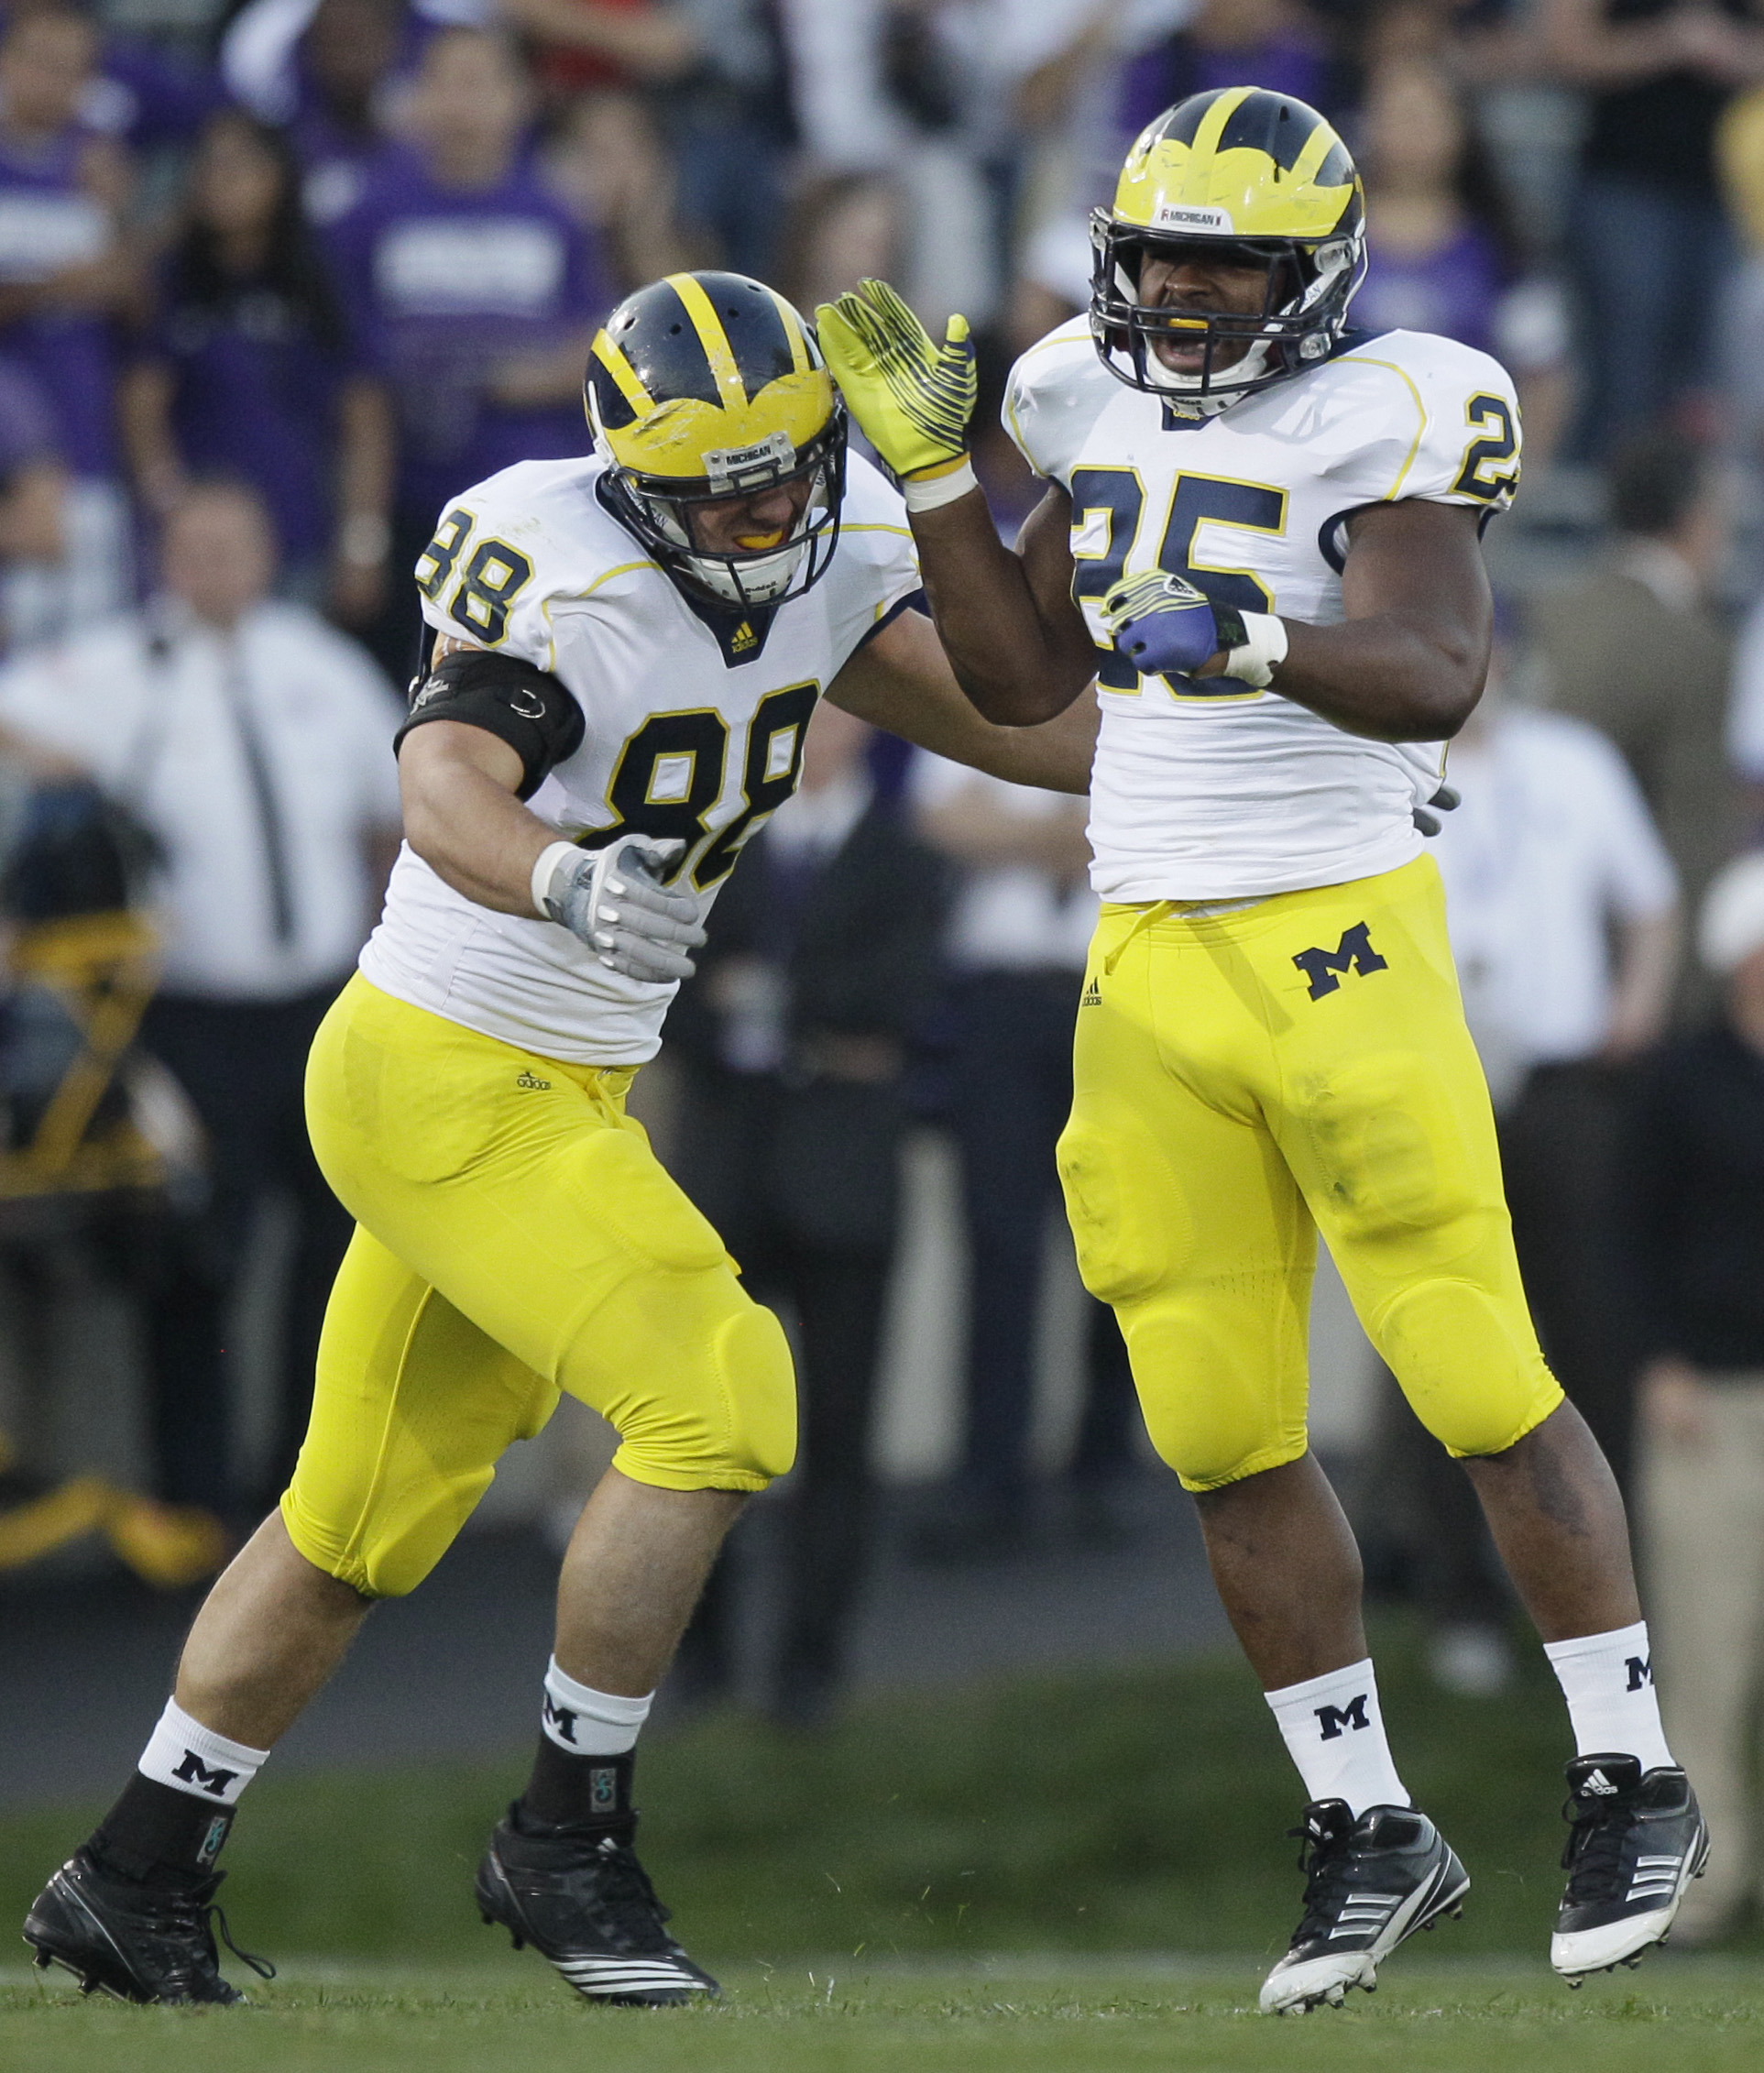 DE Craig Roh (88) and LB Kenny Demens (25) are key players in Michigan's front seven. (AP)